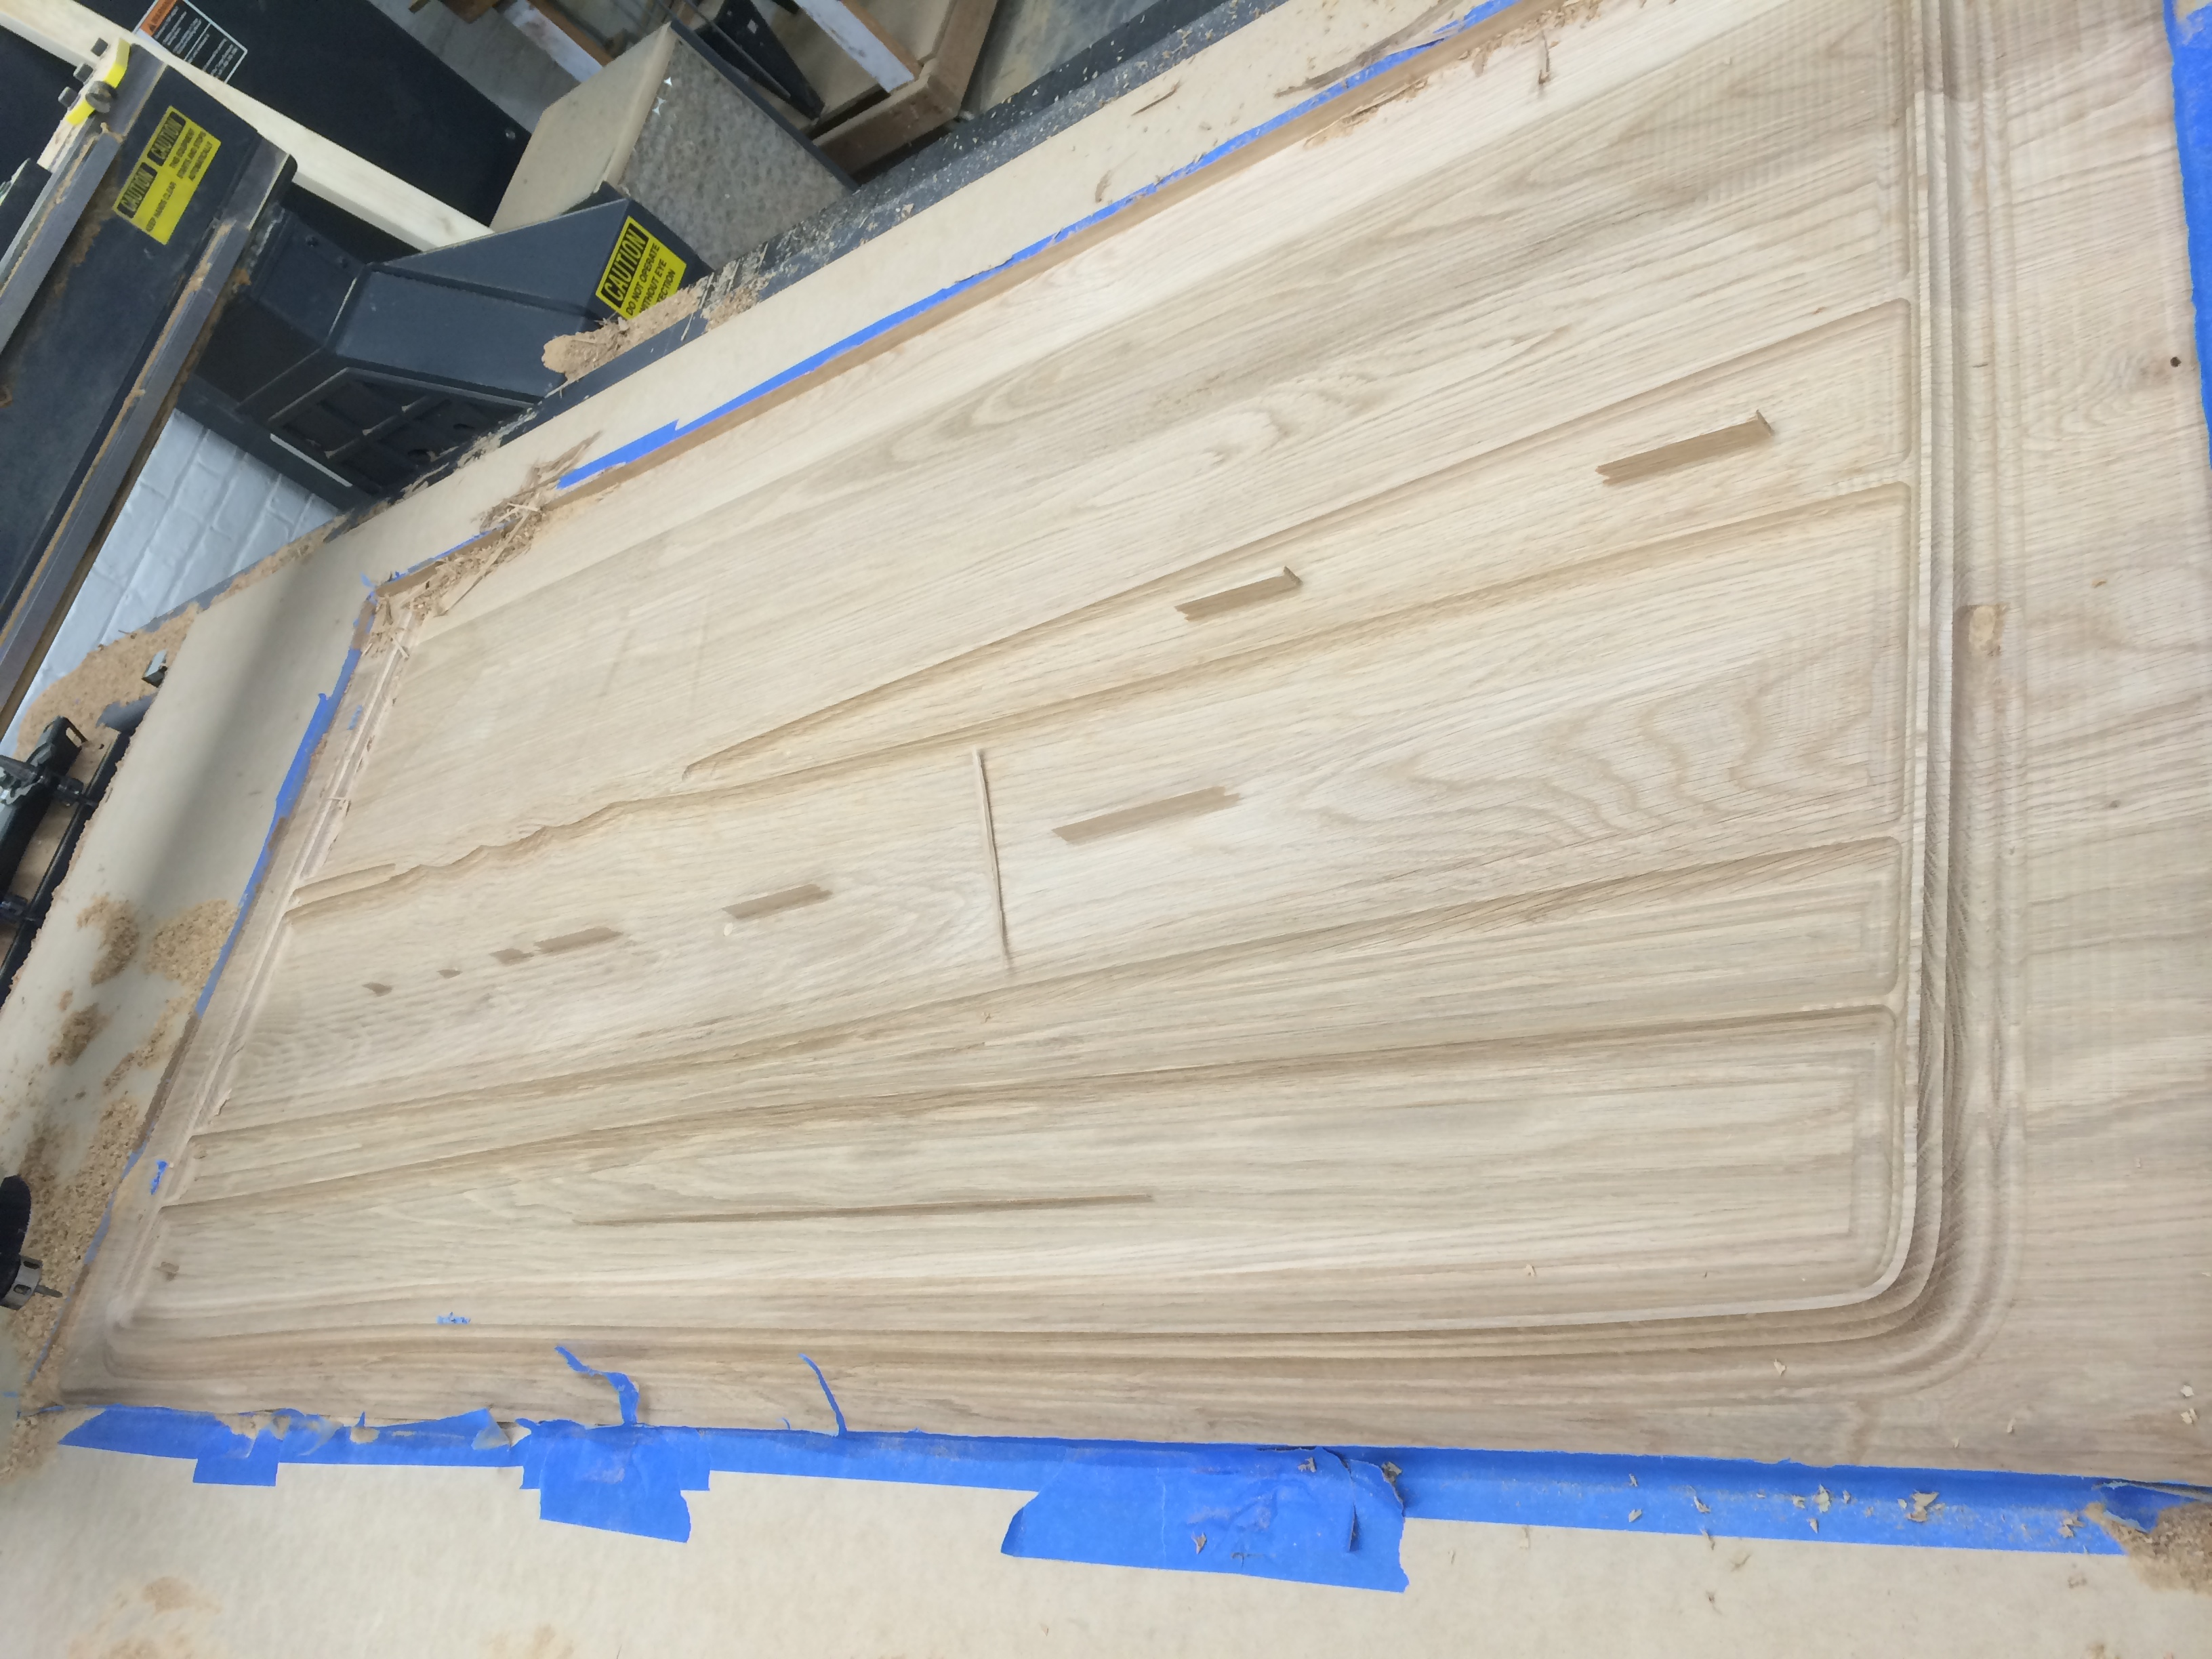 Cutting complex joinery from single solid wood panel(Jason Miller Studio).